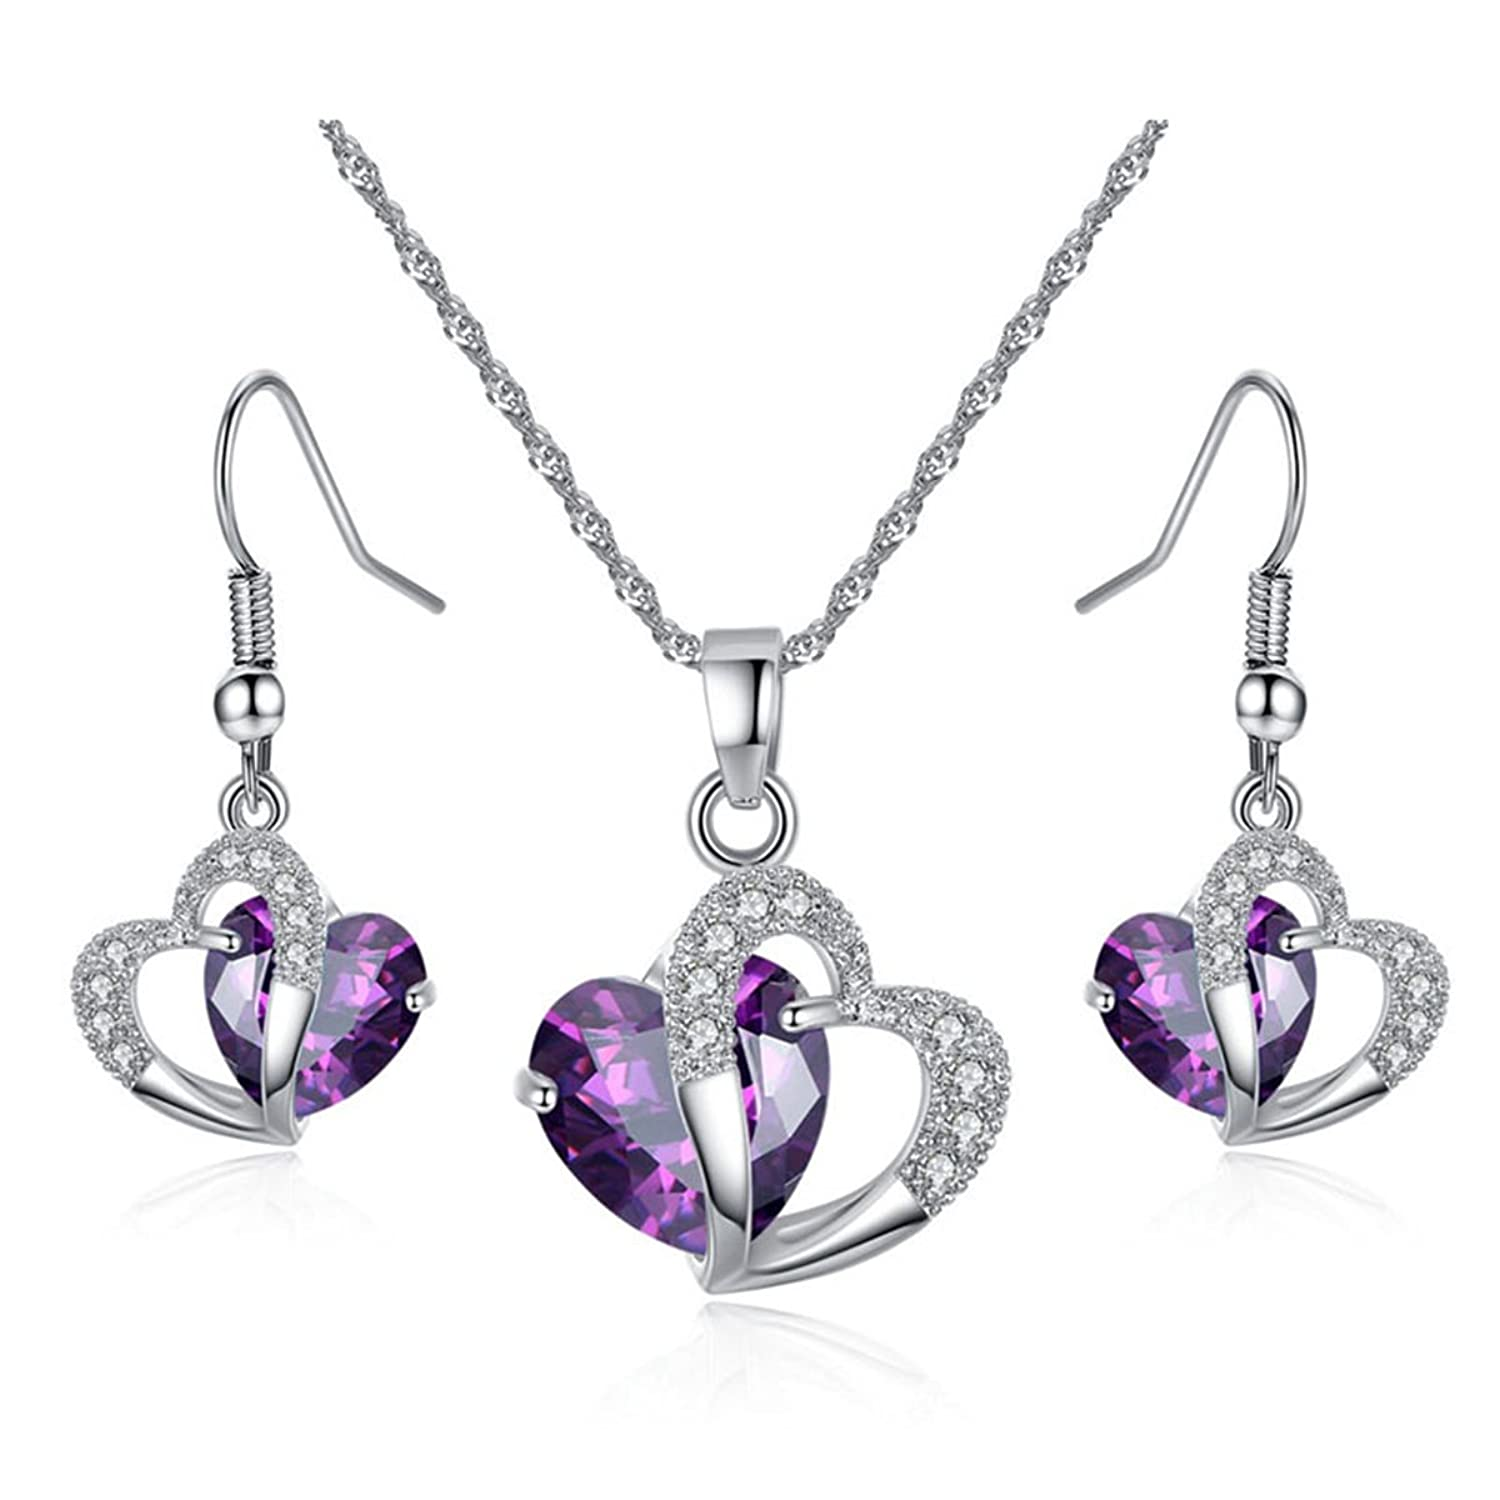 Kebaner Austrian Crystal Heart Pendant Necklace and Earrings Set 18K White Gold Plated Jewelry